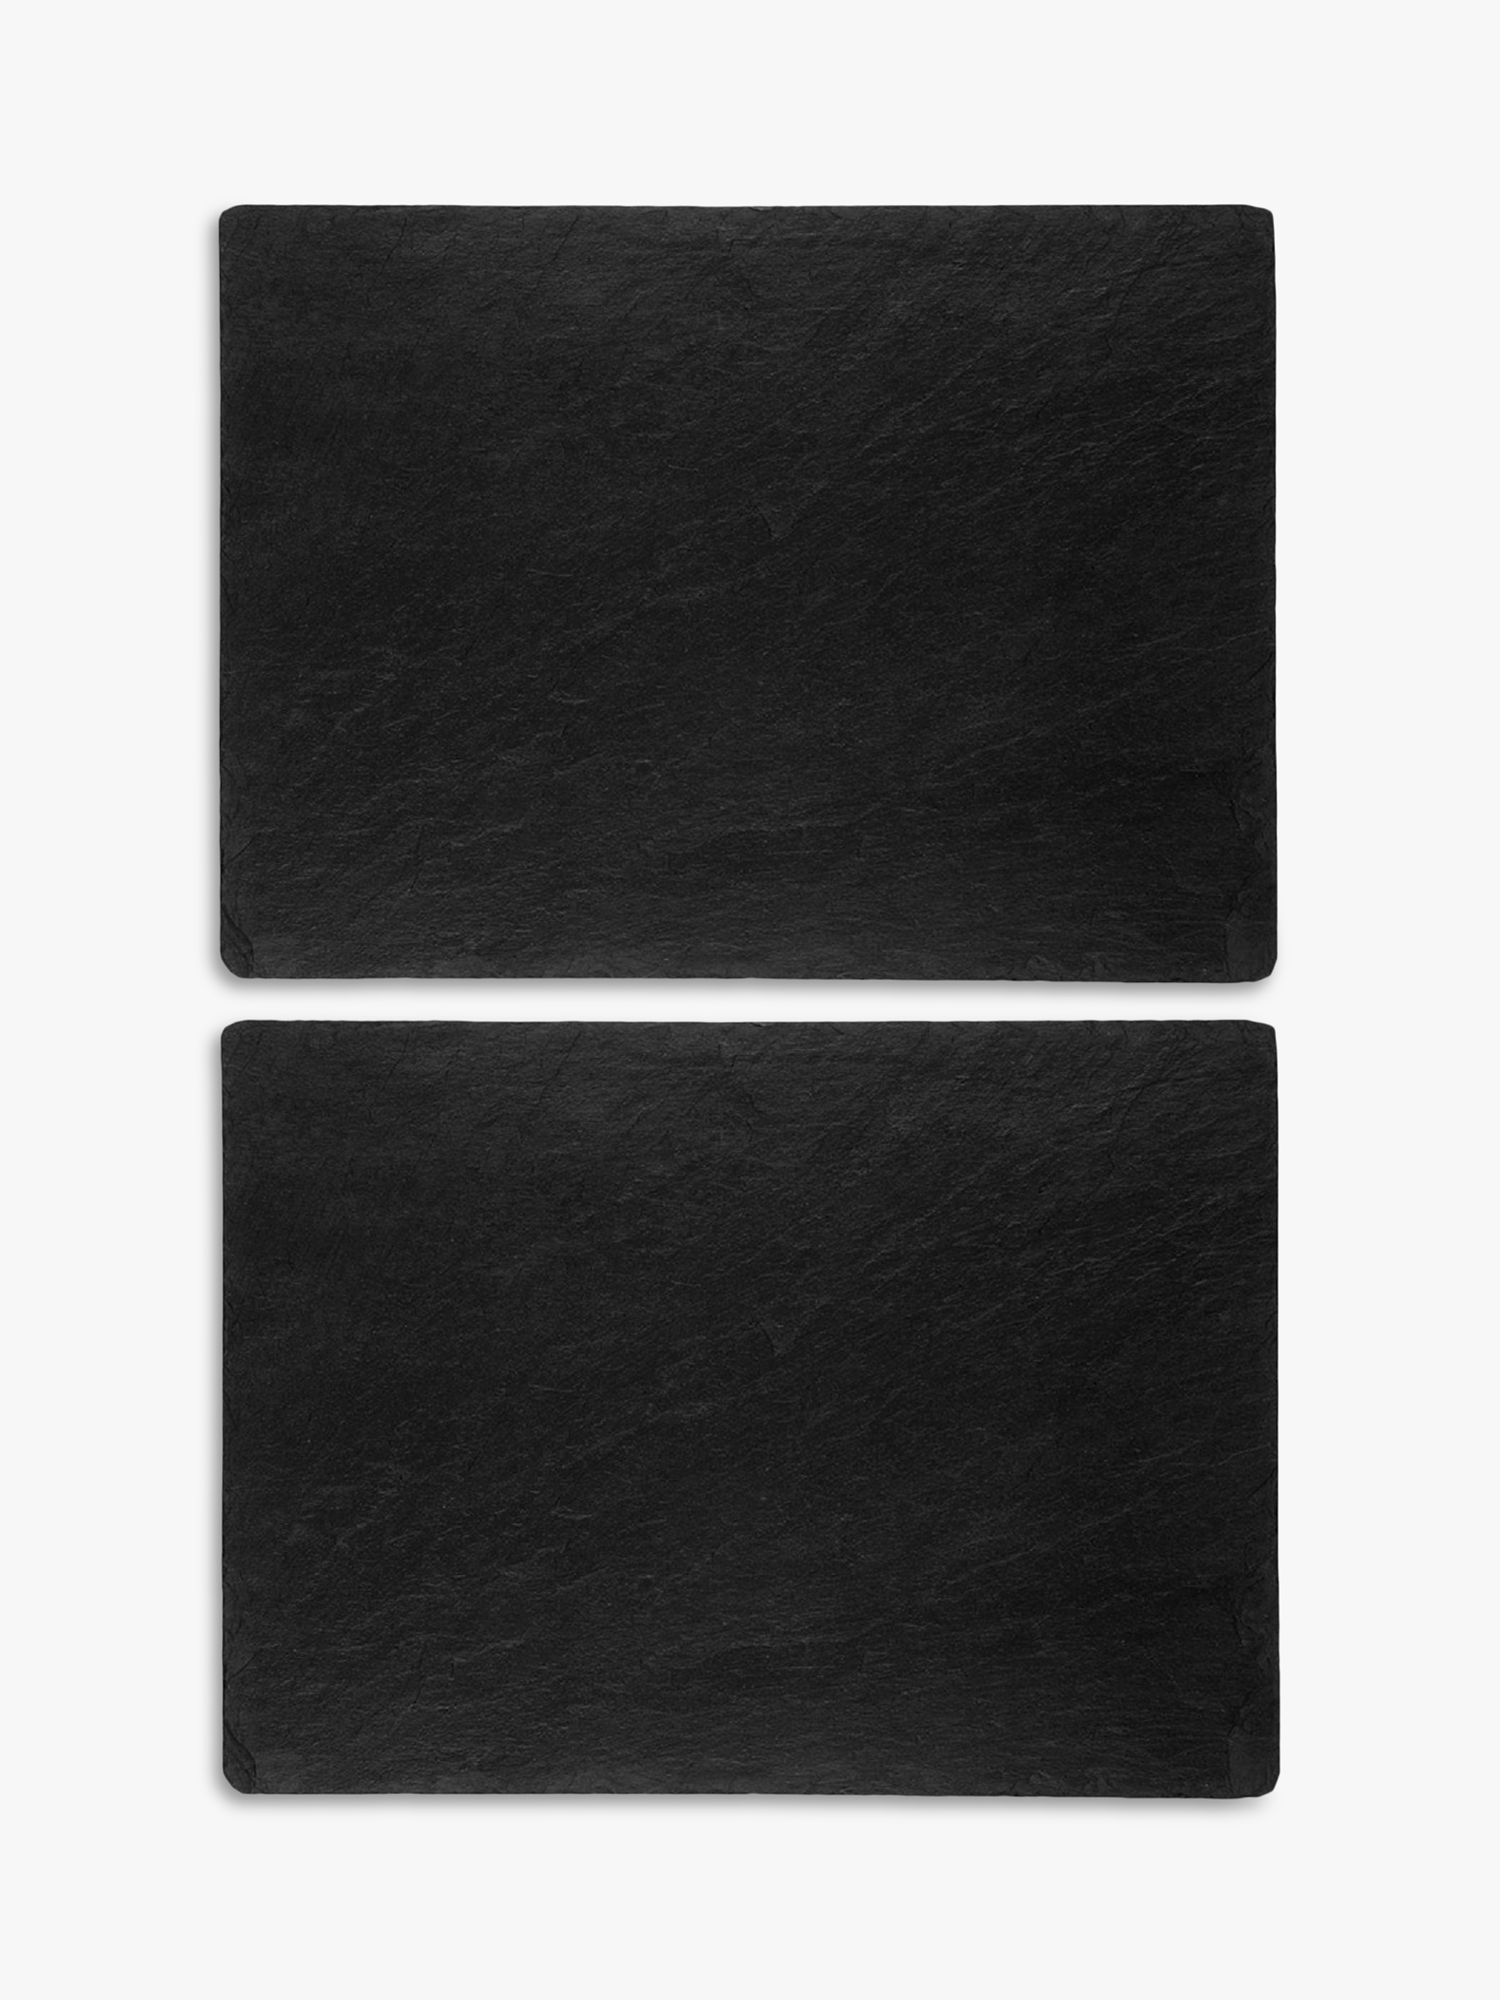 Just Slate Just Slate Placemats, Set of 2, Dark Grey